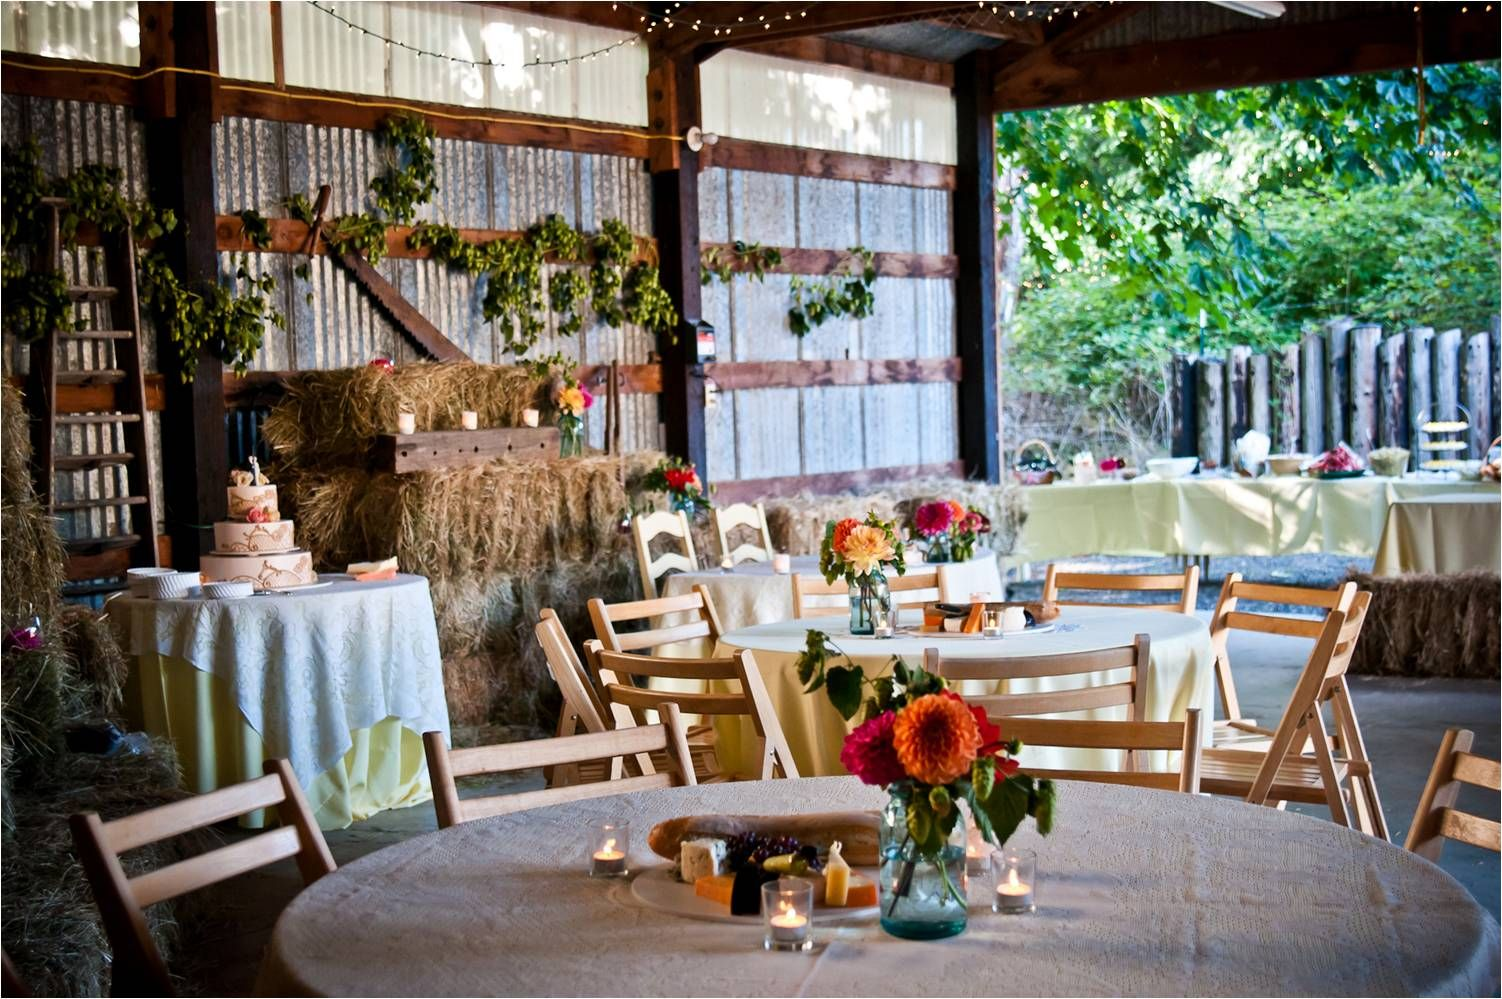 Rustic Chic With A Vintage Vibe Wedding Reception Venue This Is Very Close To The Look I M Going For When It Comes My